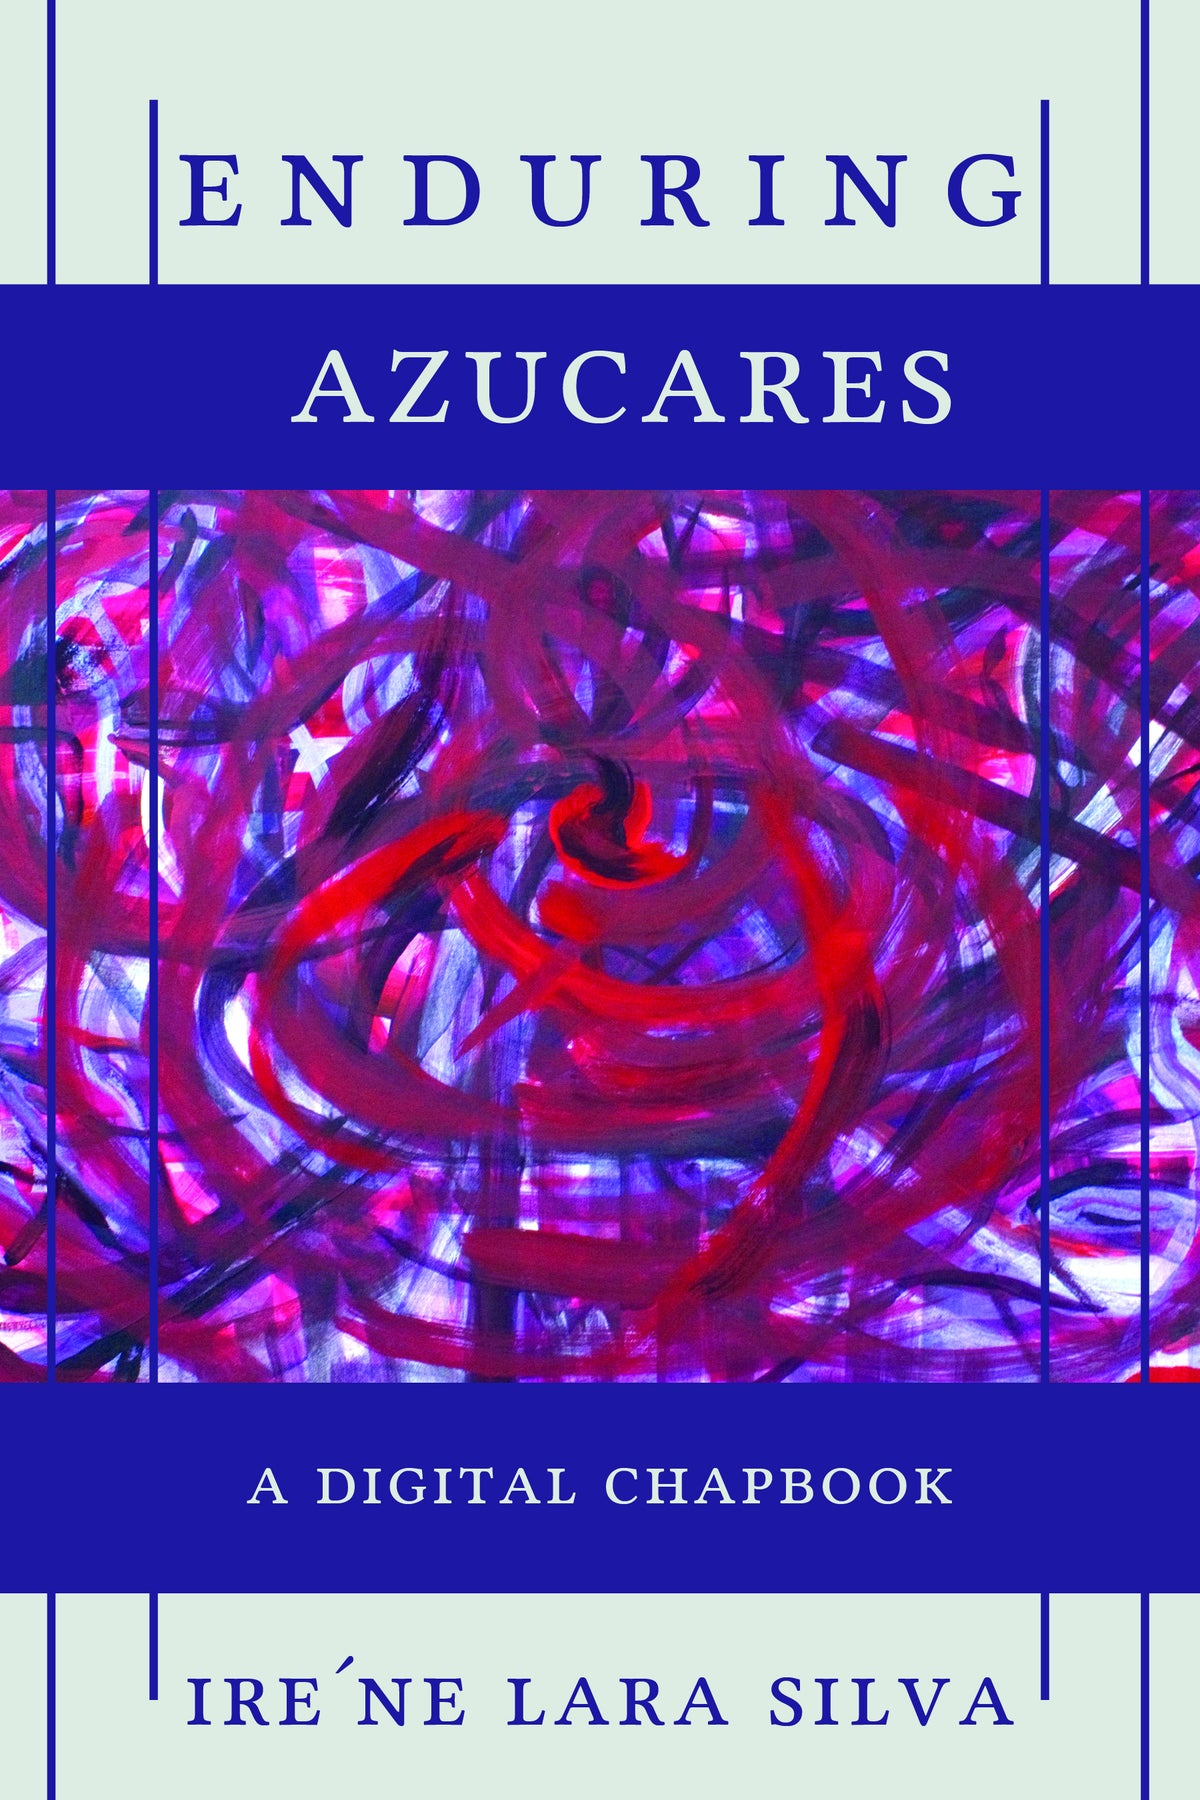 Image of enduring azucares: An SRP Digital Chapbook by ire'ne lara silva